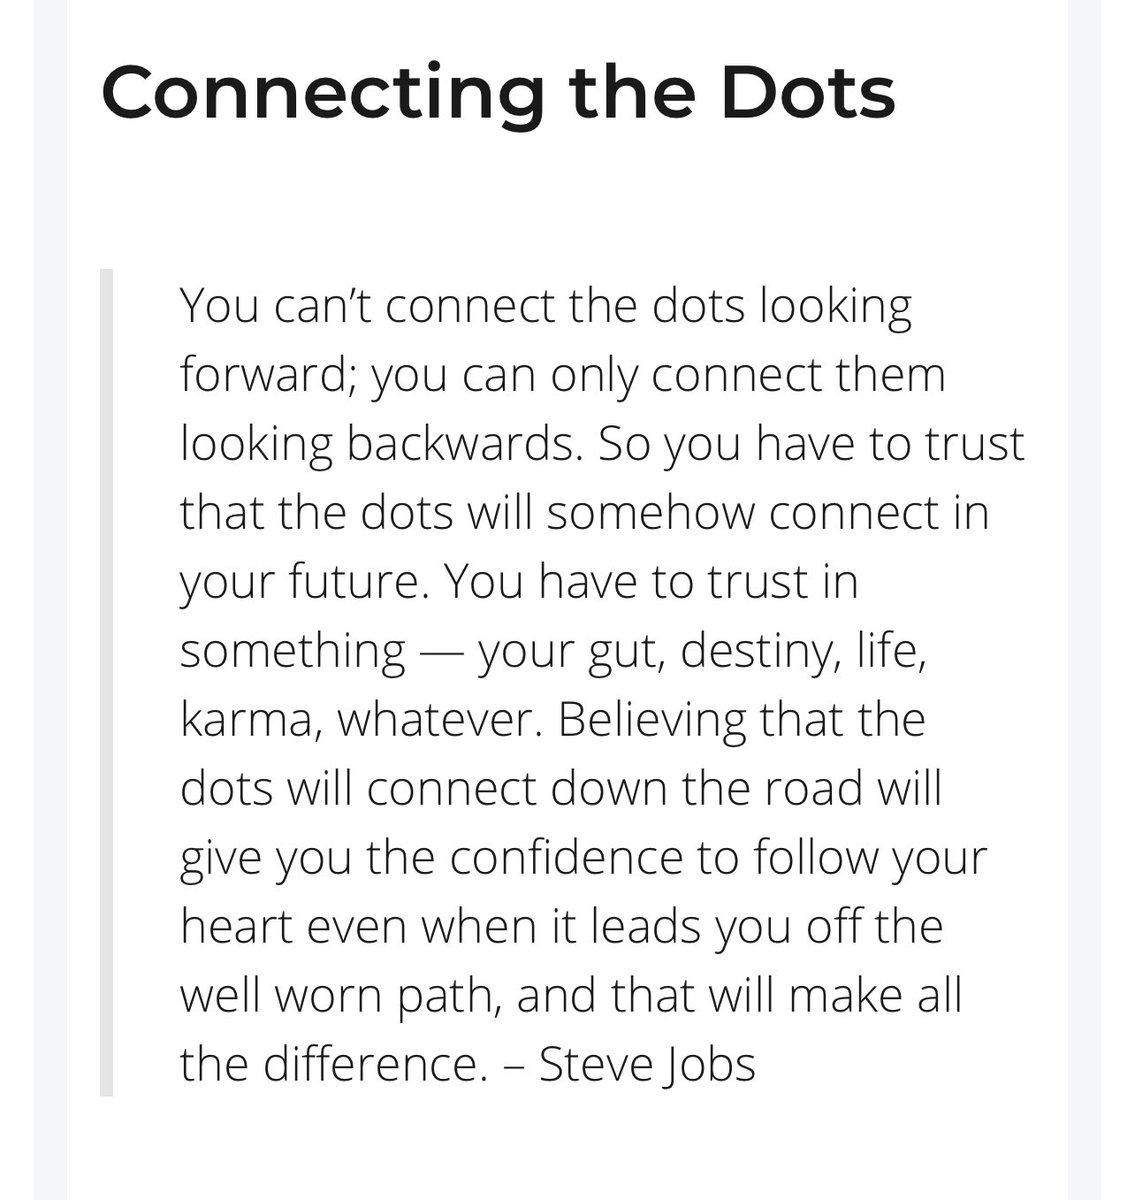 Thinking about this excerpt from that profound Steve Jobs commencement speech. I find myself always coming back to various parts of that speech at important points in my life.   https://t.co/QKExoNMI5k https://t.co/WTKaTOilxO